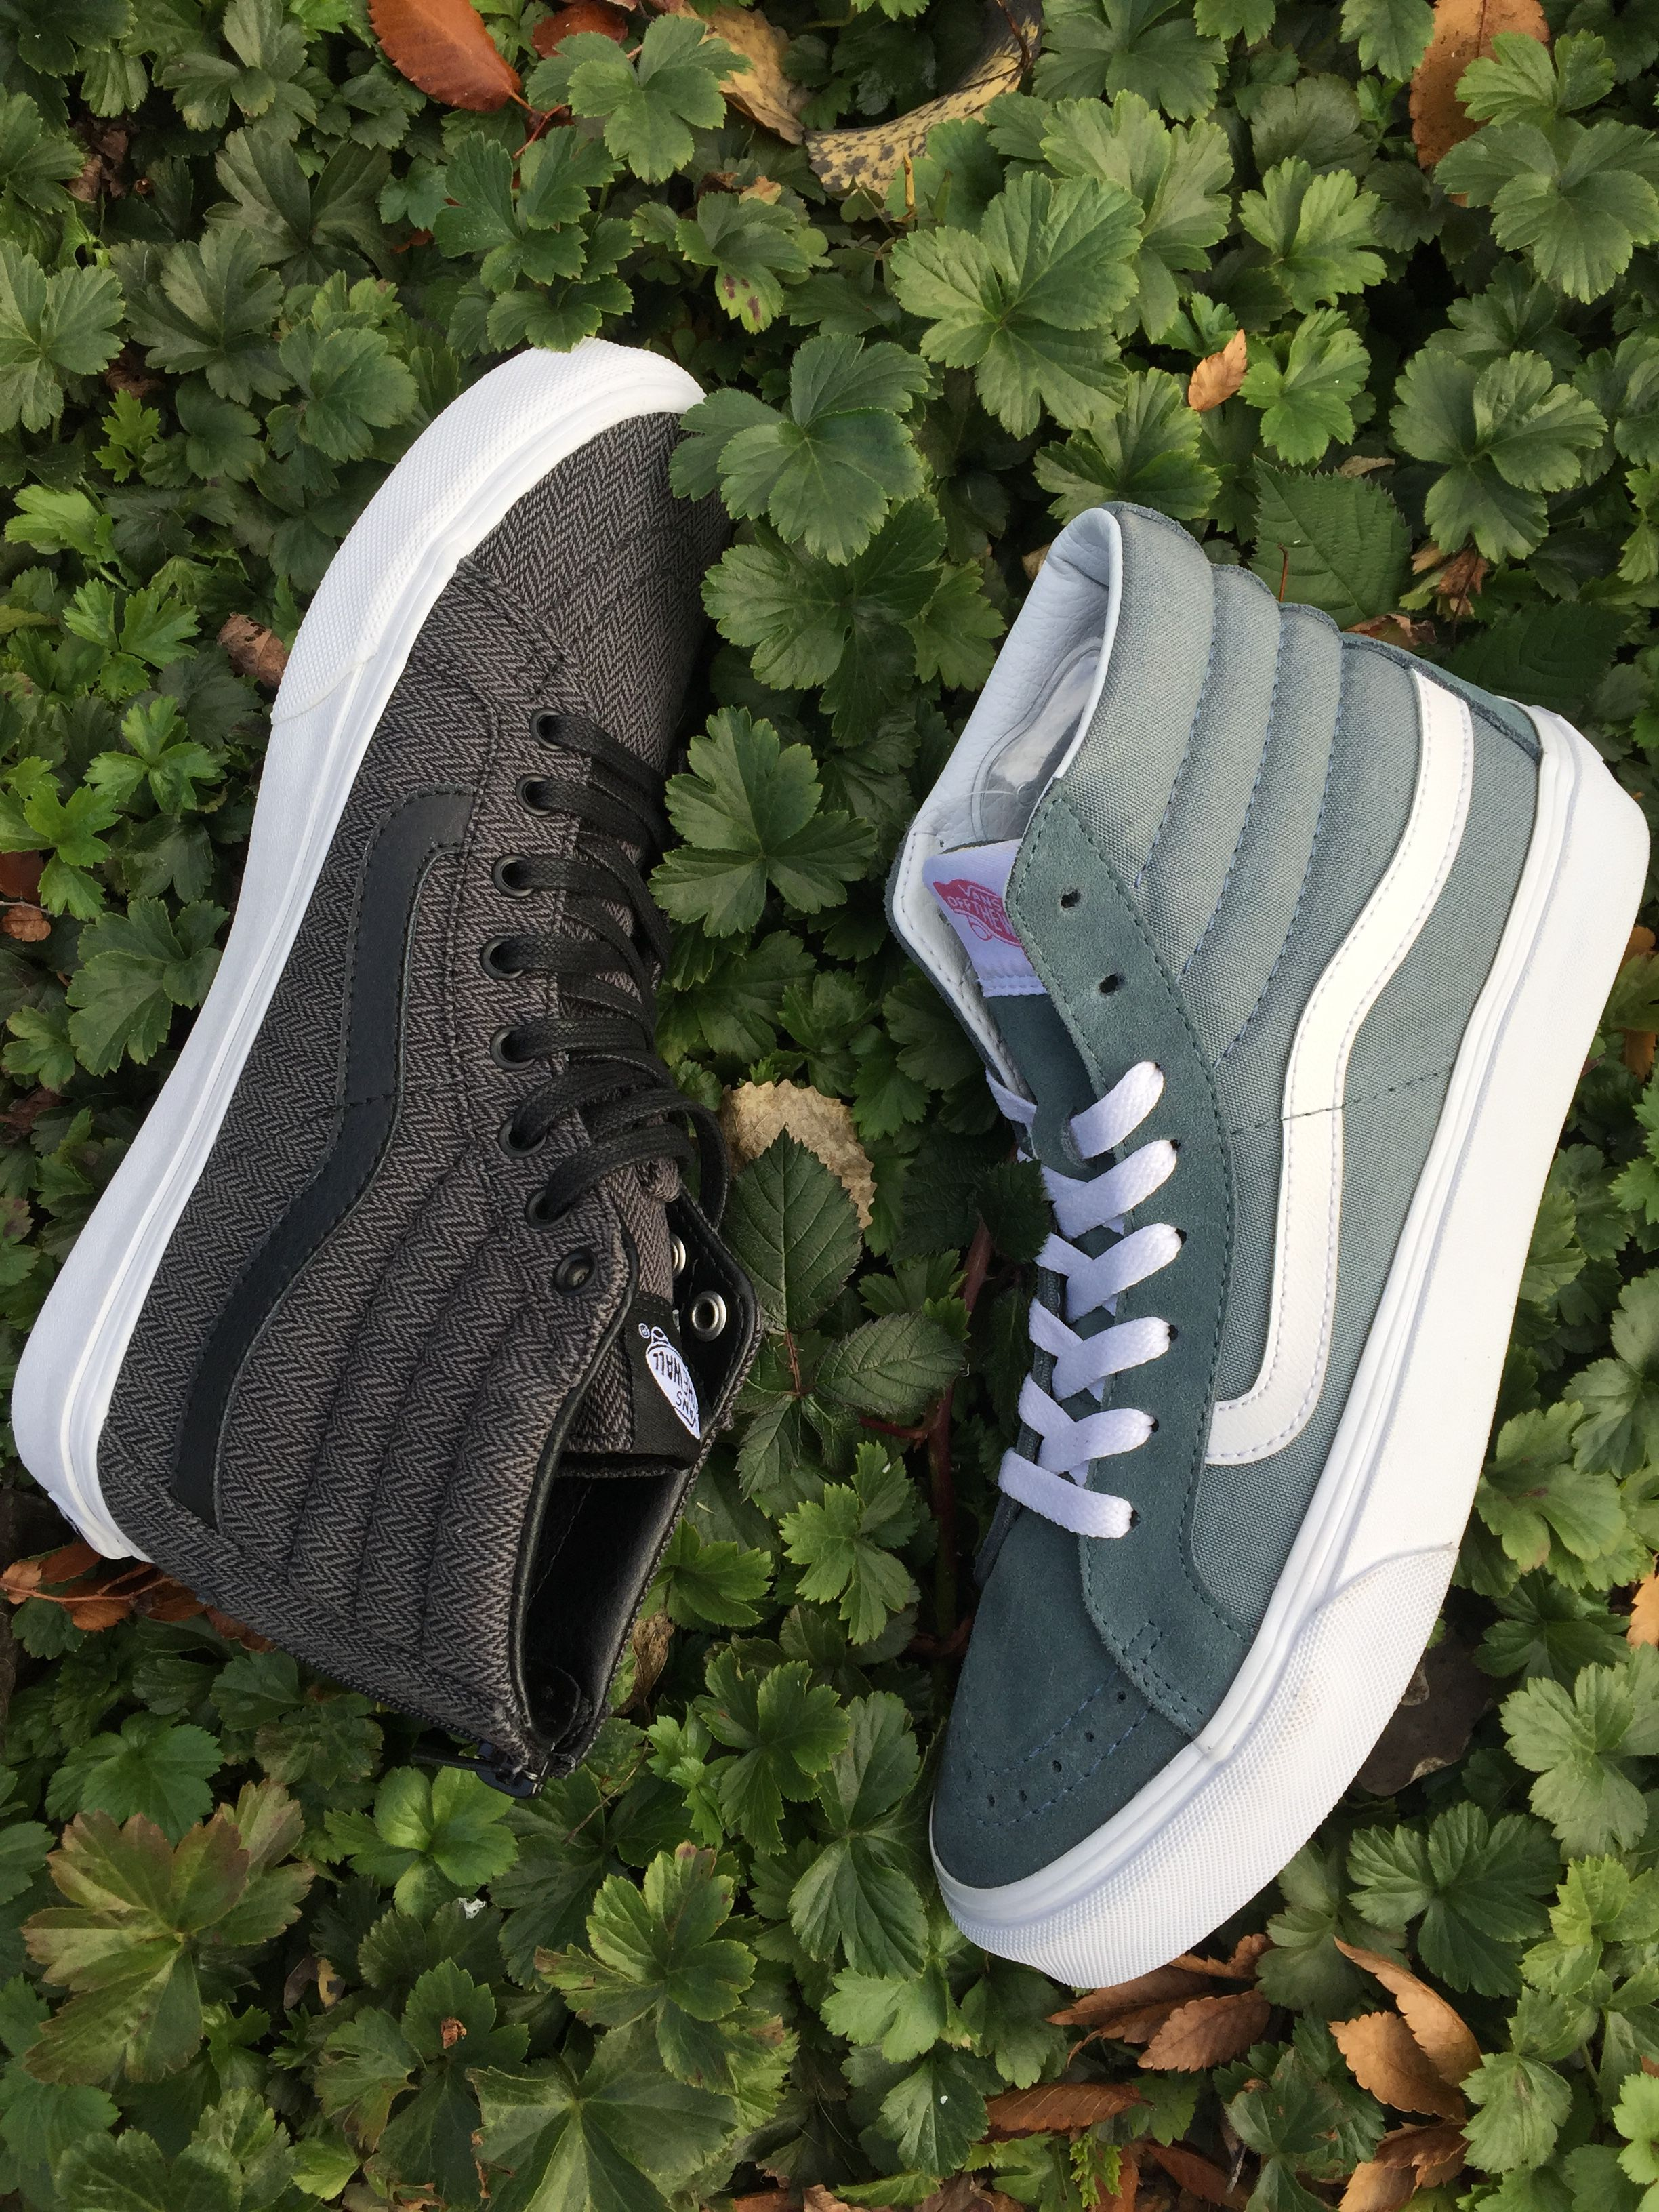 db50e255545 Vans Sk8 Hi Slims in Herringbone Tweed and Stormy Weather